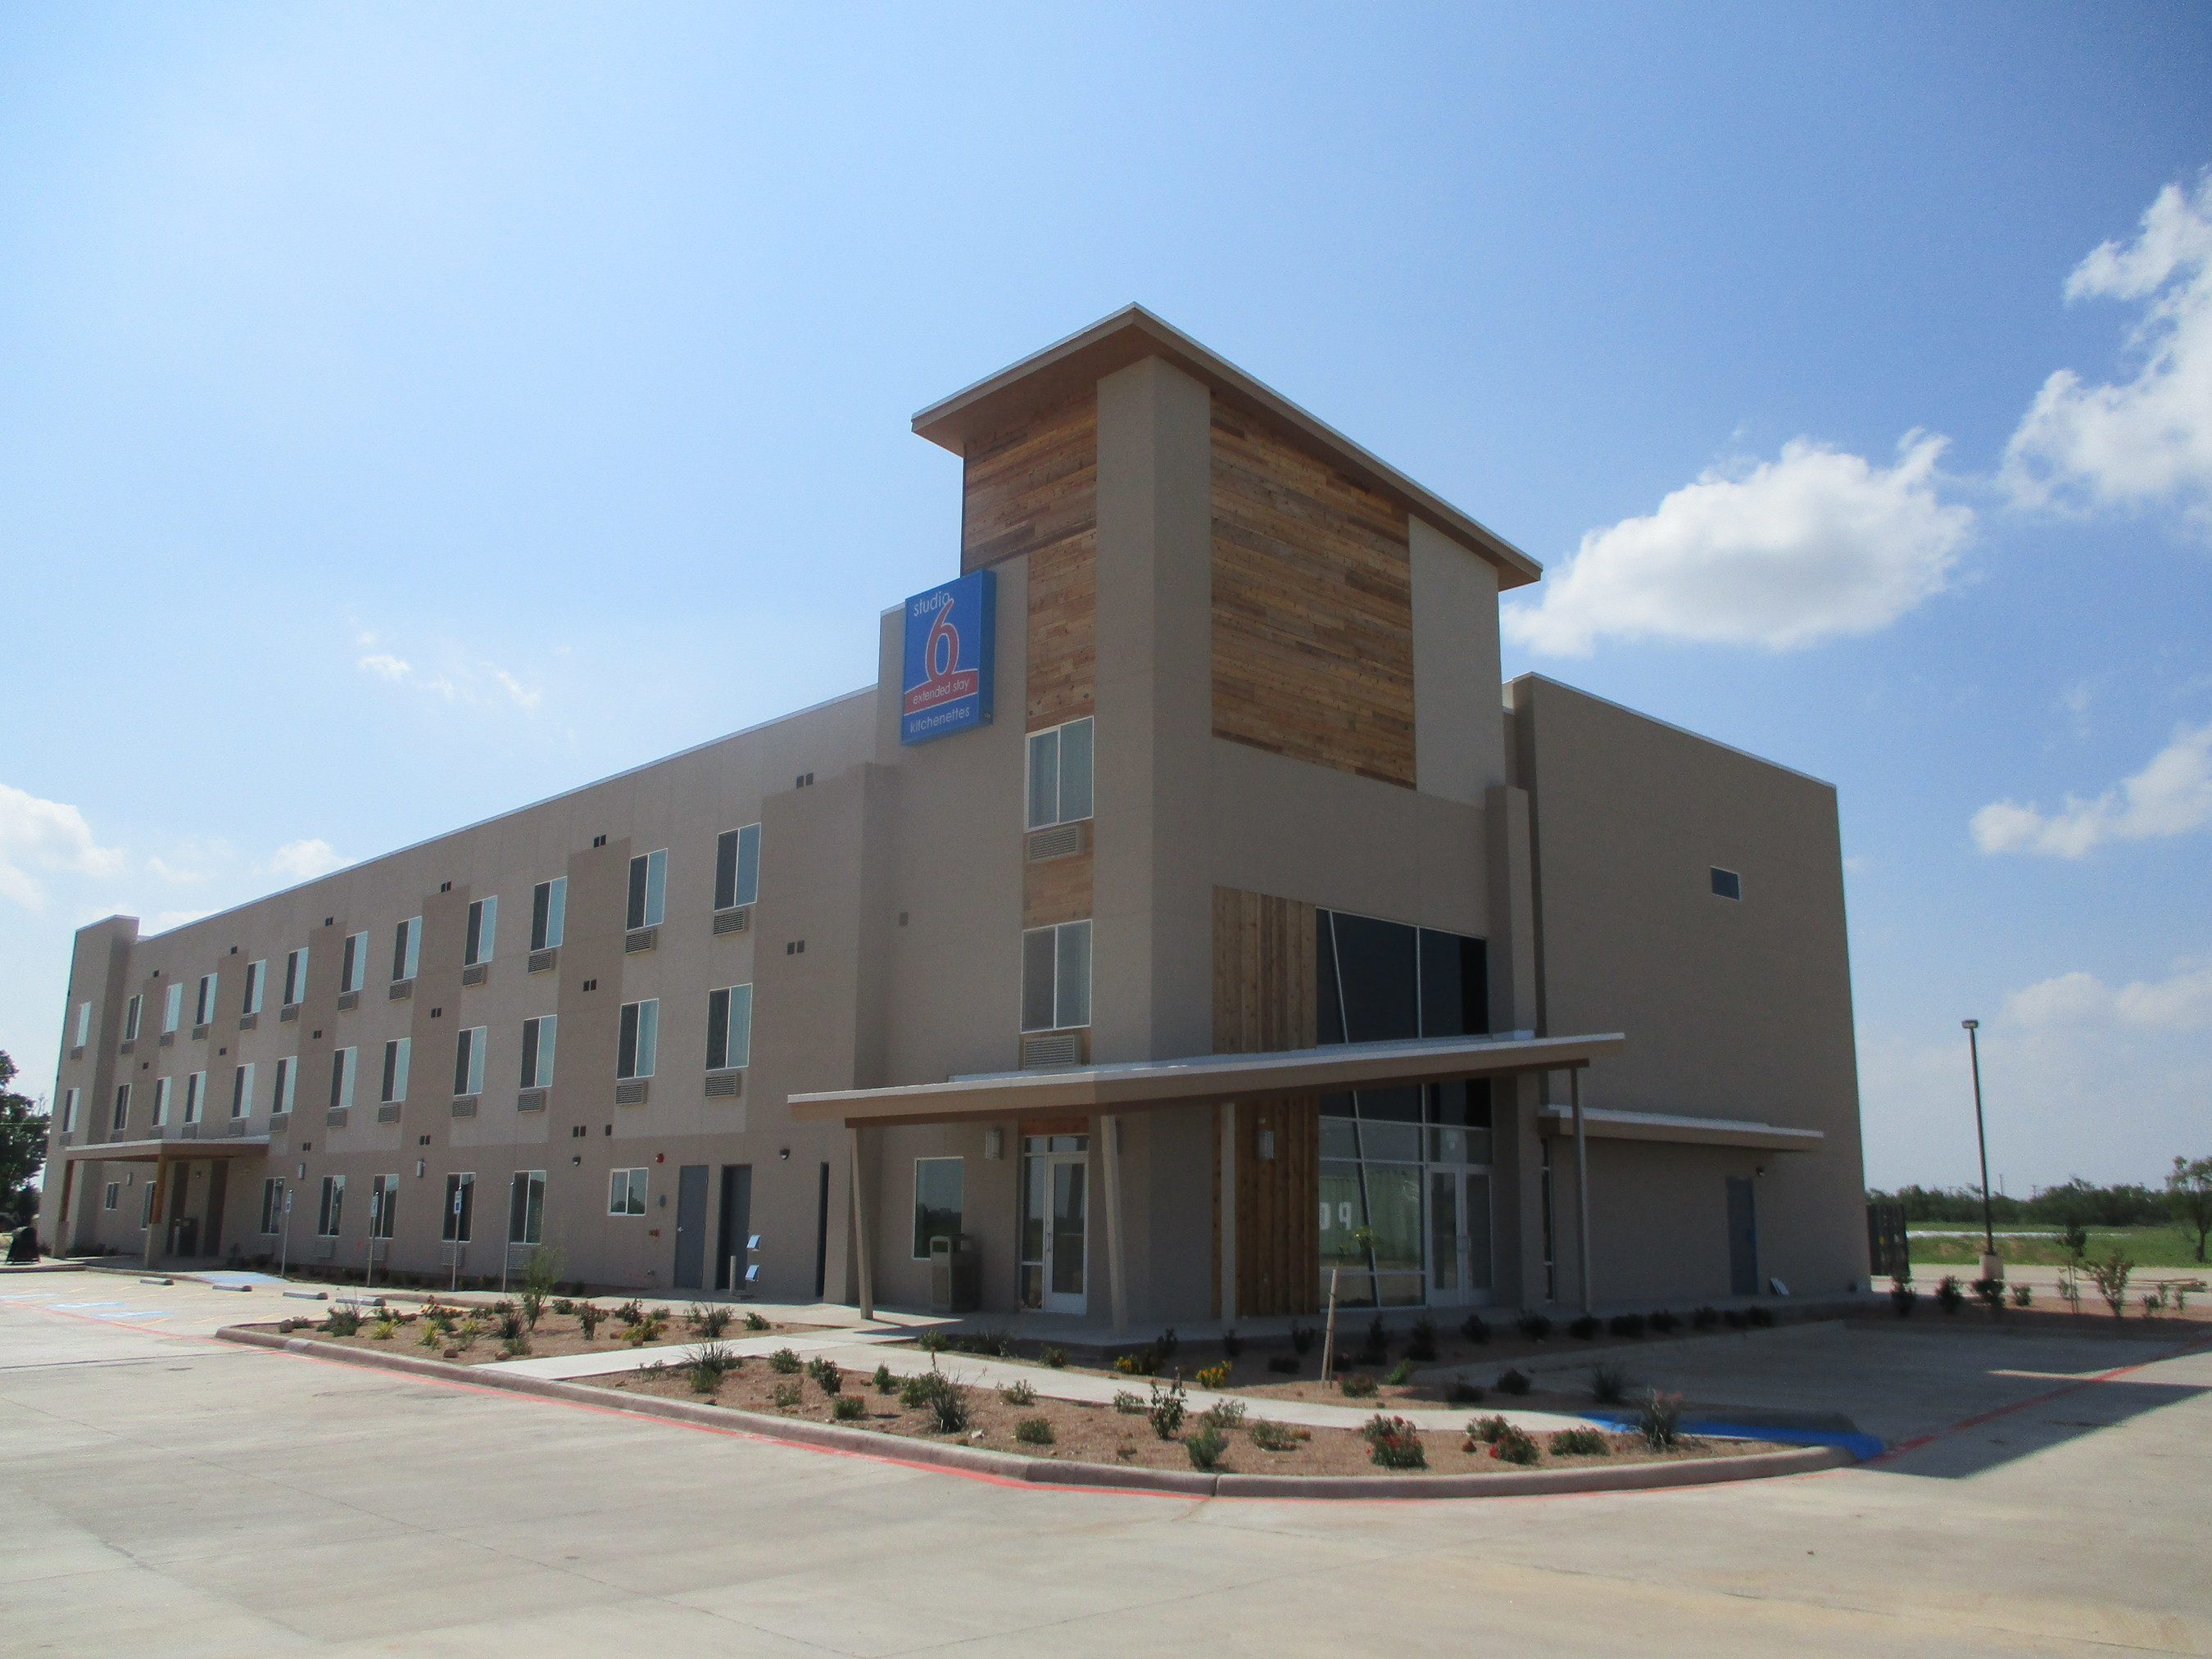 Newly opened Studio 6 in Colorado City, TX is the 100th location for the brand